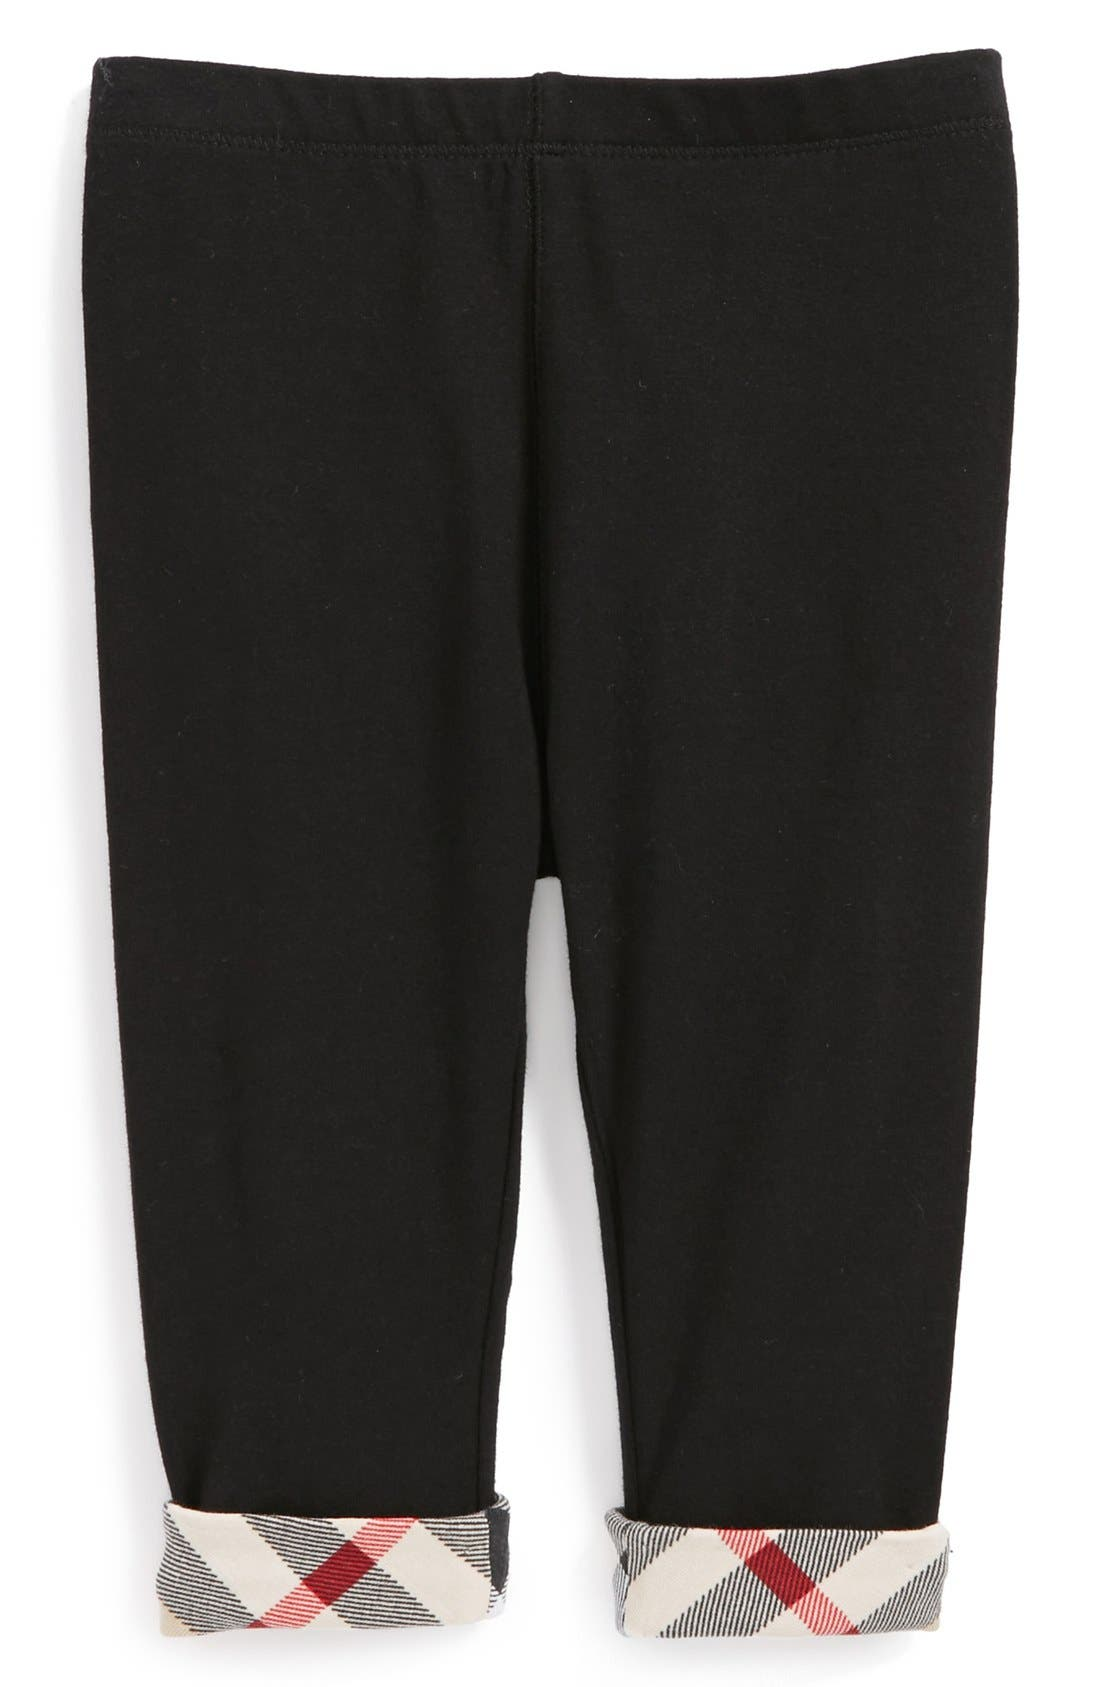 BURBERRY,                             Check Cuff Pants,                             Alternate thumbnail 5, color,                             001